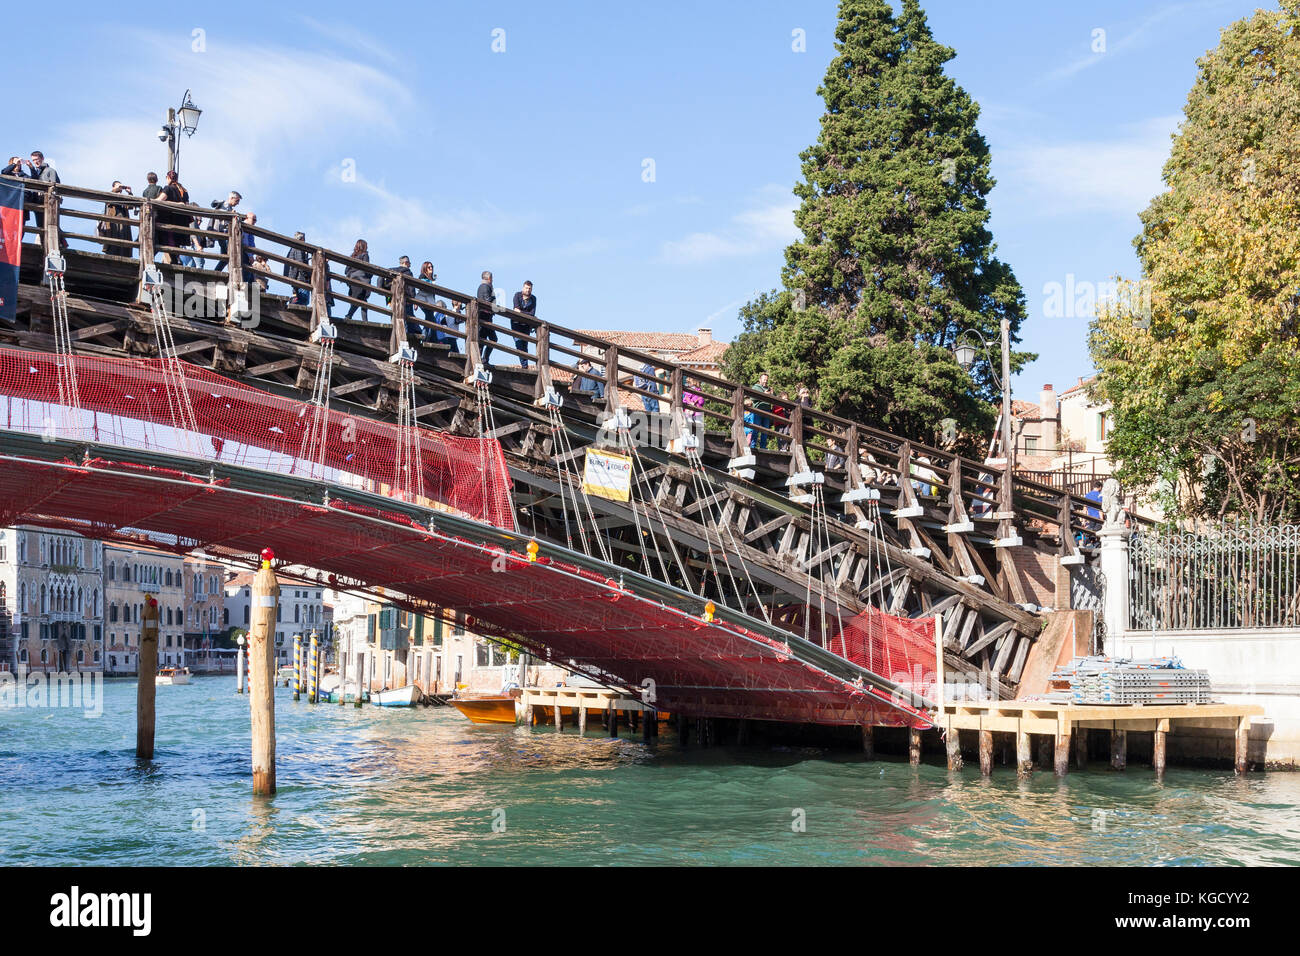 Restoration work being done on the Accademia Bridge, Grand Canal, Venice , Italy funded by Luxottica eye glasses - Stock Image